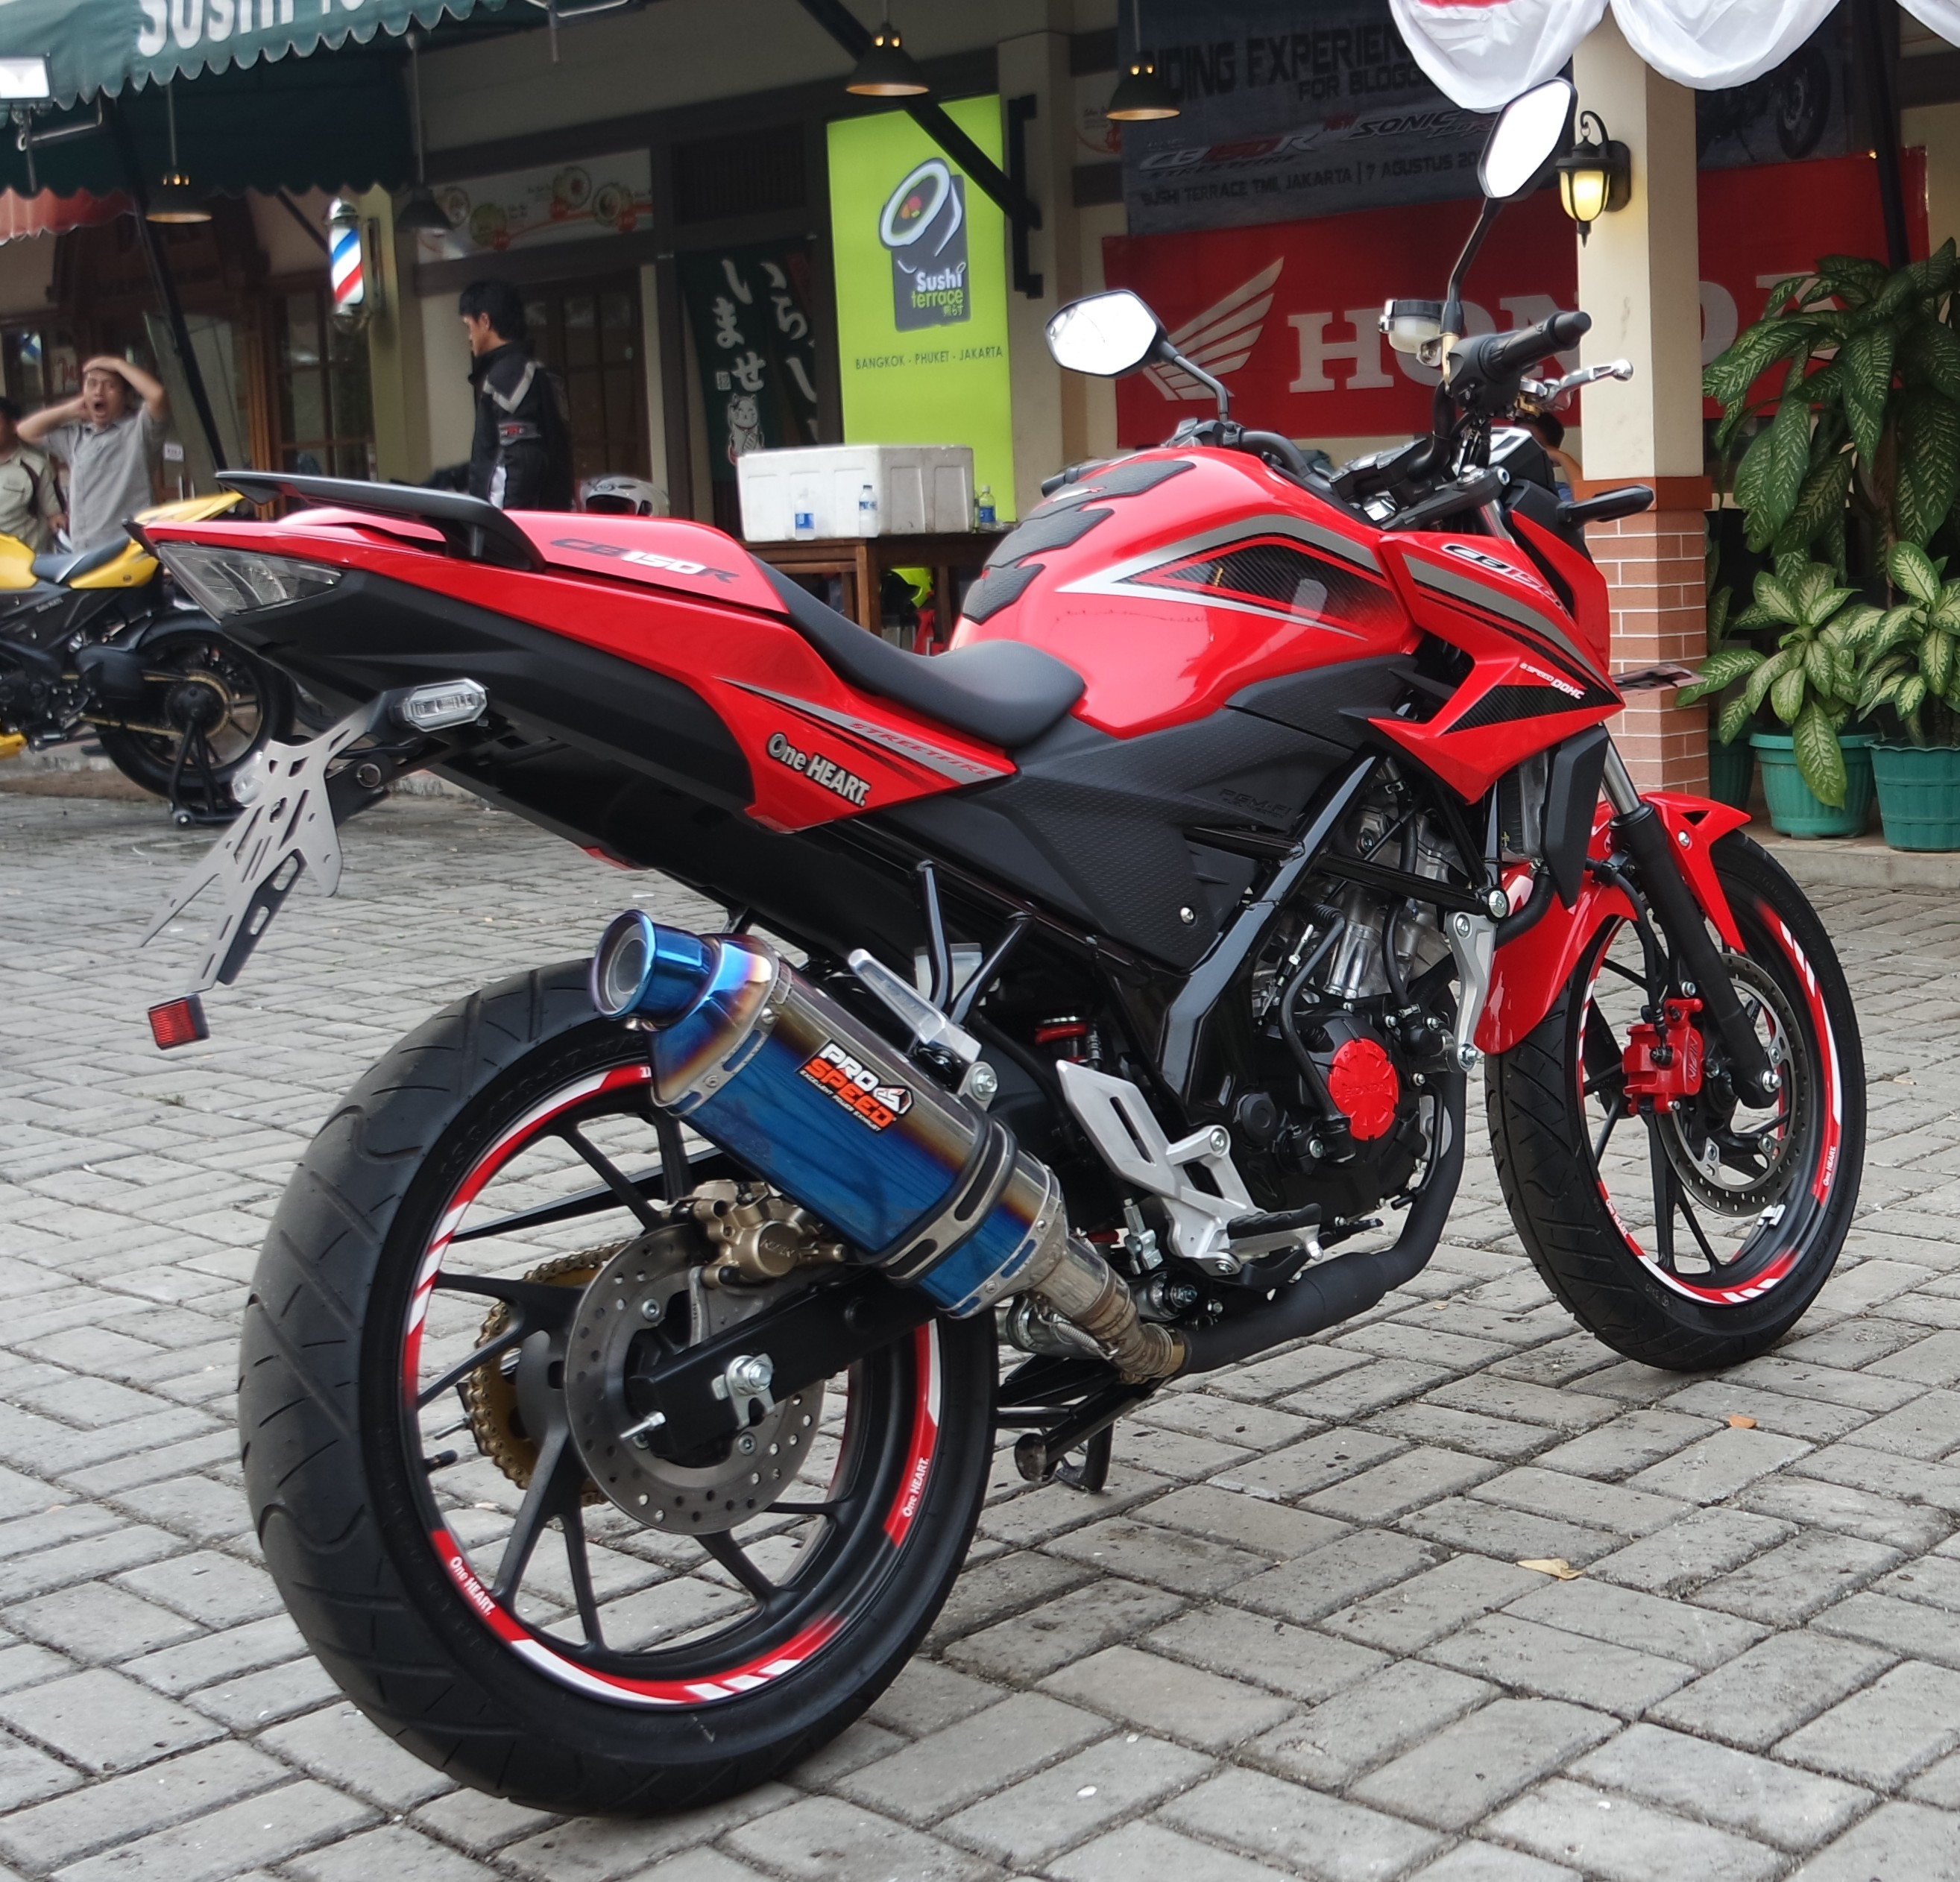 Jual Honda Cb 150 All New Welcome To 150r Streetfire Macho Black Kudus Test Ride Cb150r Nyamannya Bisa Bikin